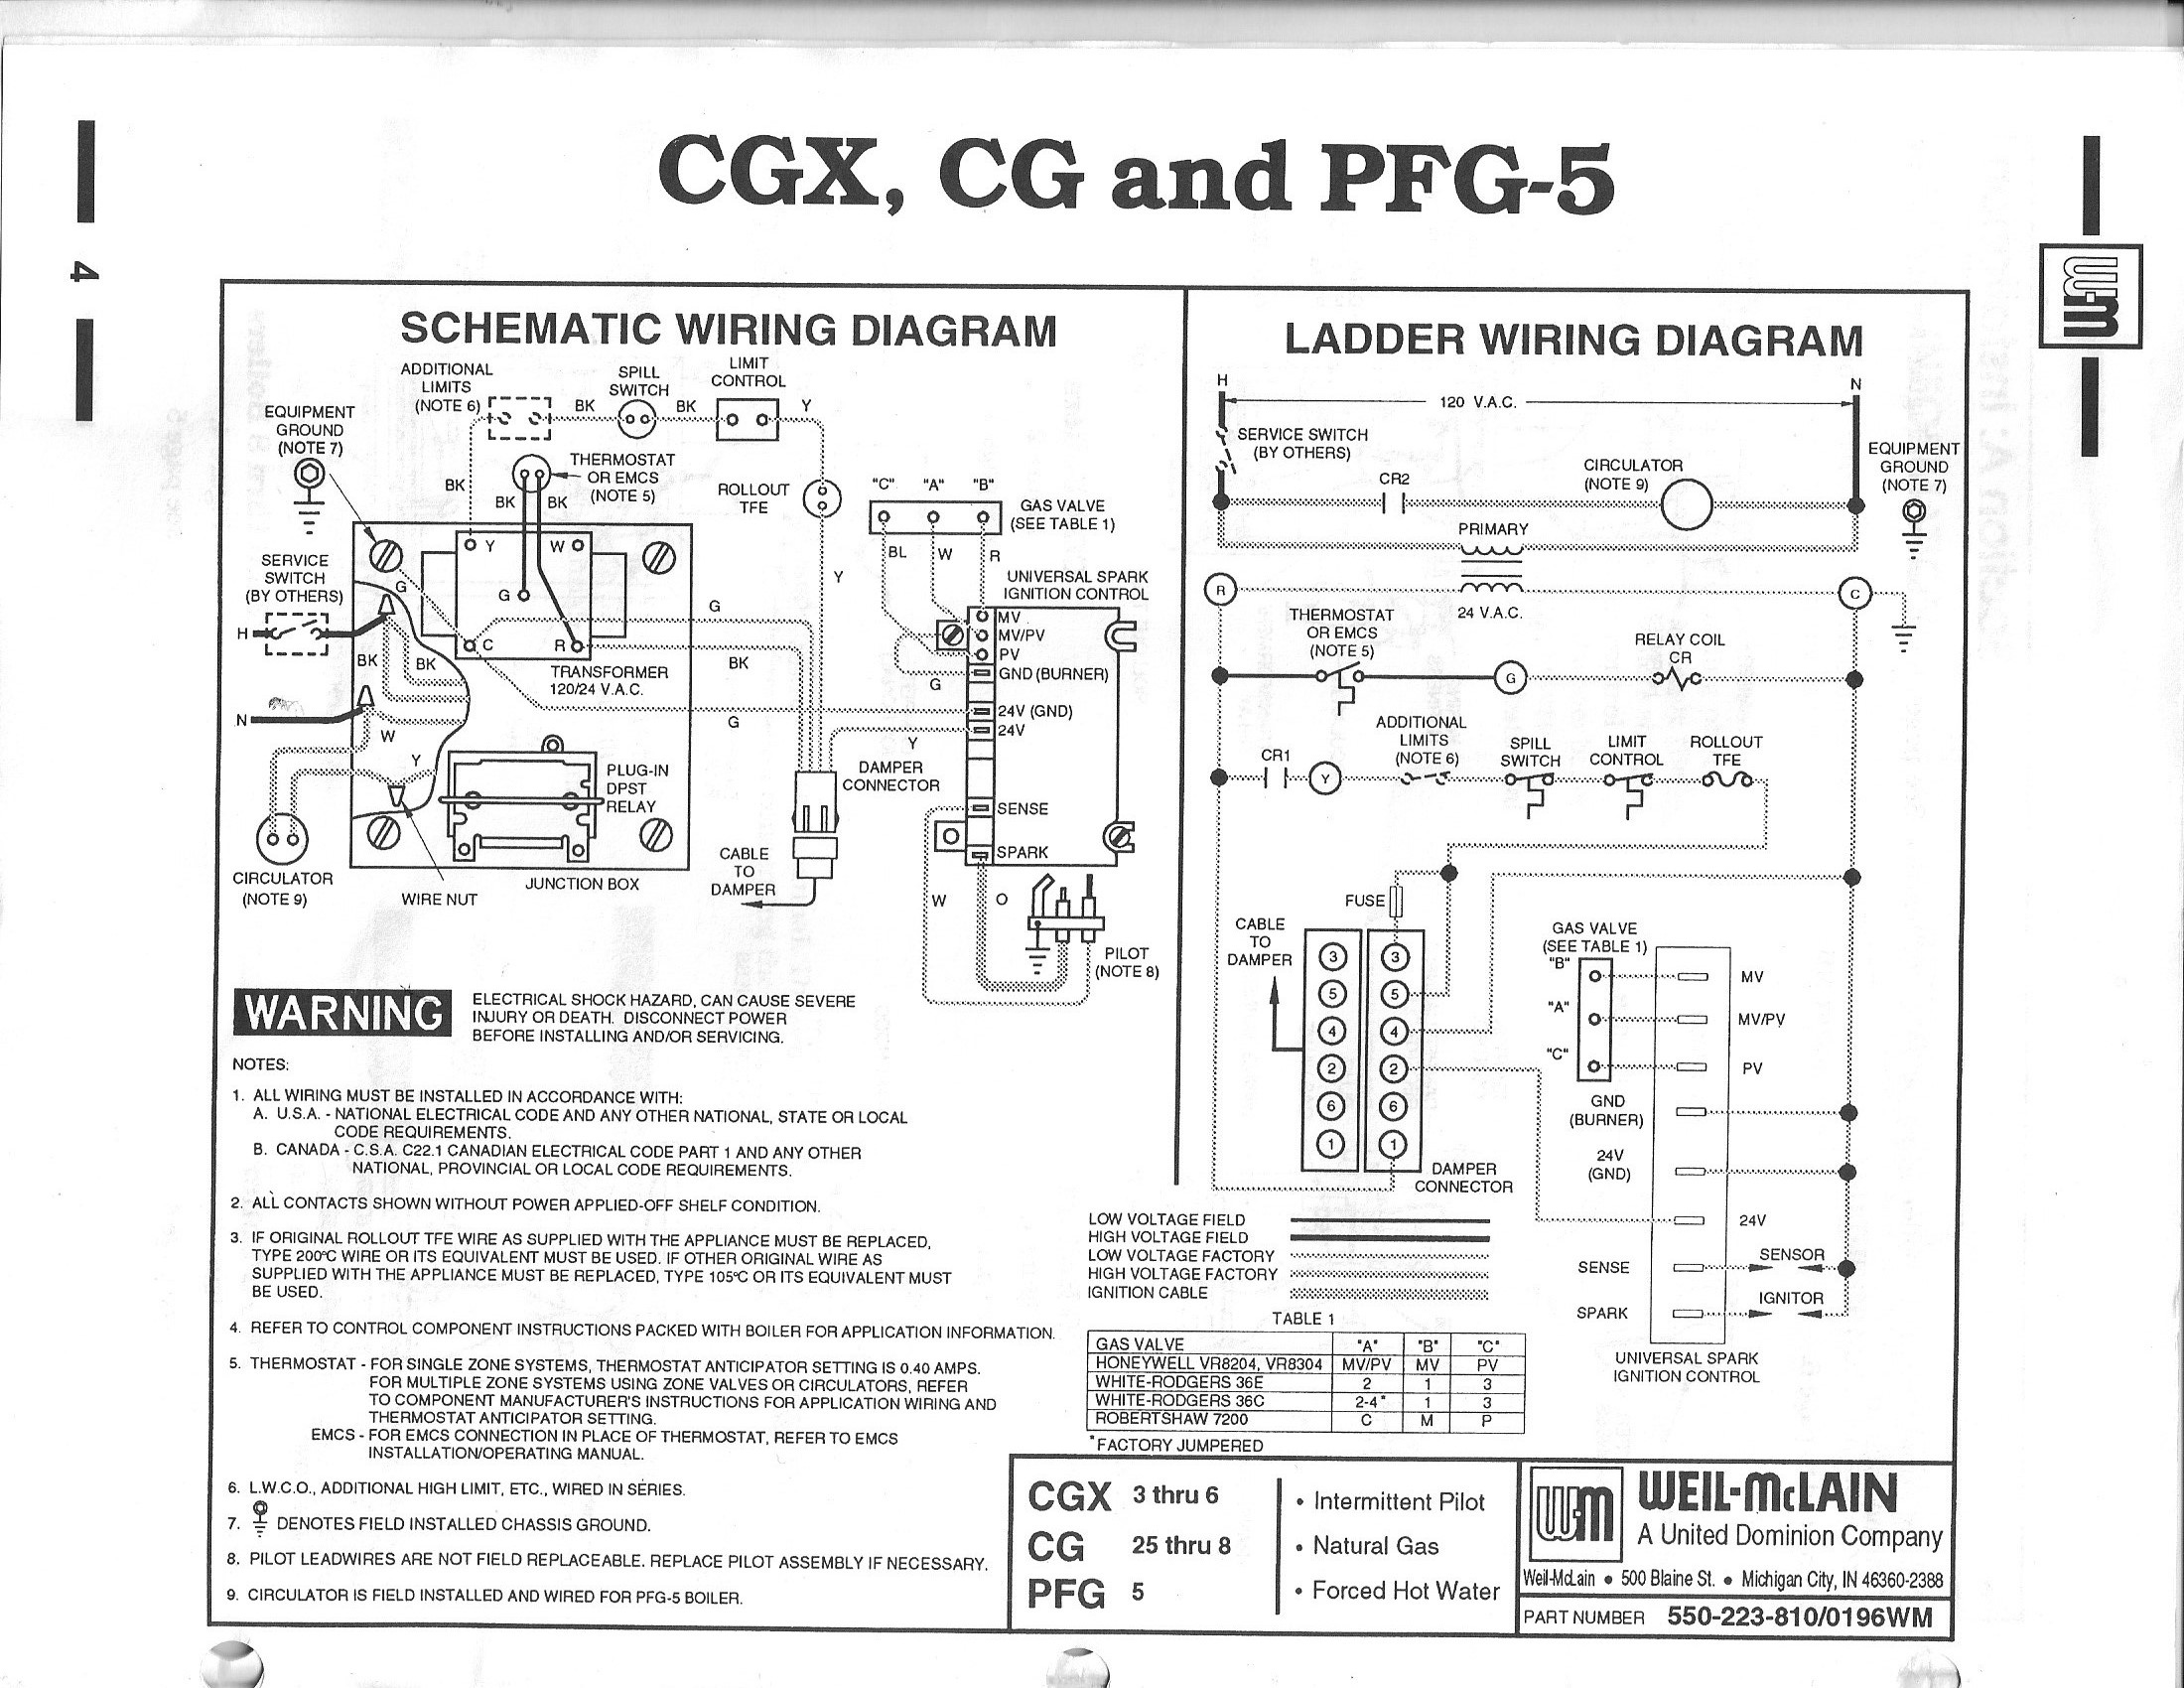 I am replacing a Weil-McLain CGA-4 with a new GCA-4 Gold, Series 2 Old Wiring Diagrams For Gas Fired Boilers on electric wiring diagram, gas boiler thermostat, gas boiler heater, heater wiring diagram, gas hot water boiler diagram, gas water boiler components diagram, electrical installation wiring diagram, gas fireplace wiring-diagram, electricity wiring diagram, boiler gas train diagram, gas boiler schematic, gas boiler regulator, boiler schematic diagram, boiler installation diagram, commercial boiler diagram, gas boiler troubleshooting, oil wiring diagram, gas boiler repair, gas boiler radiator diagram, boiler room diagram,